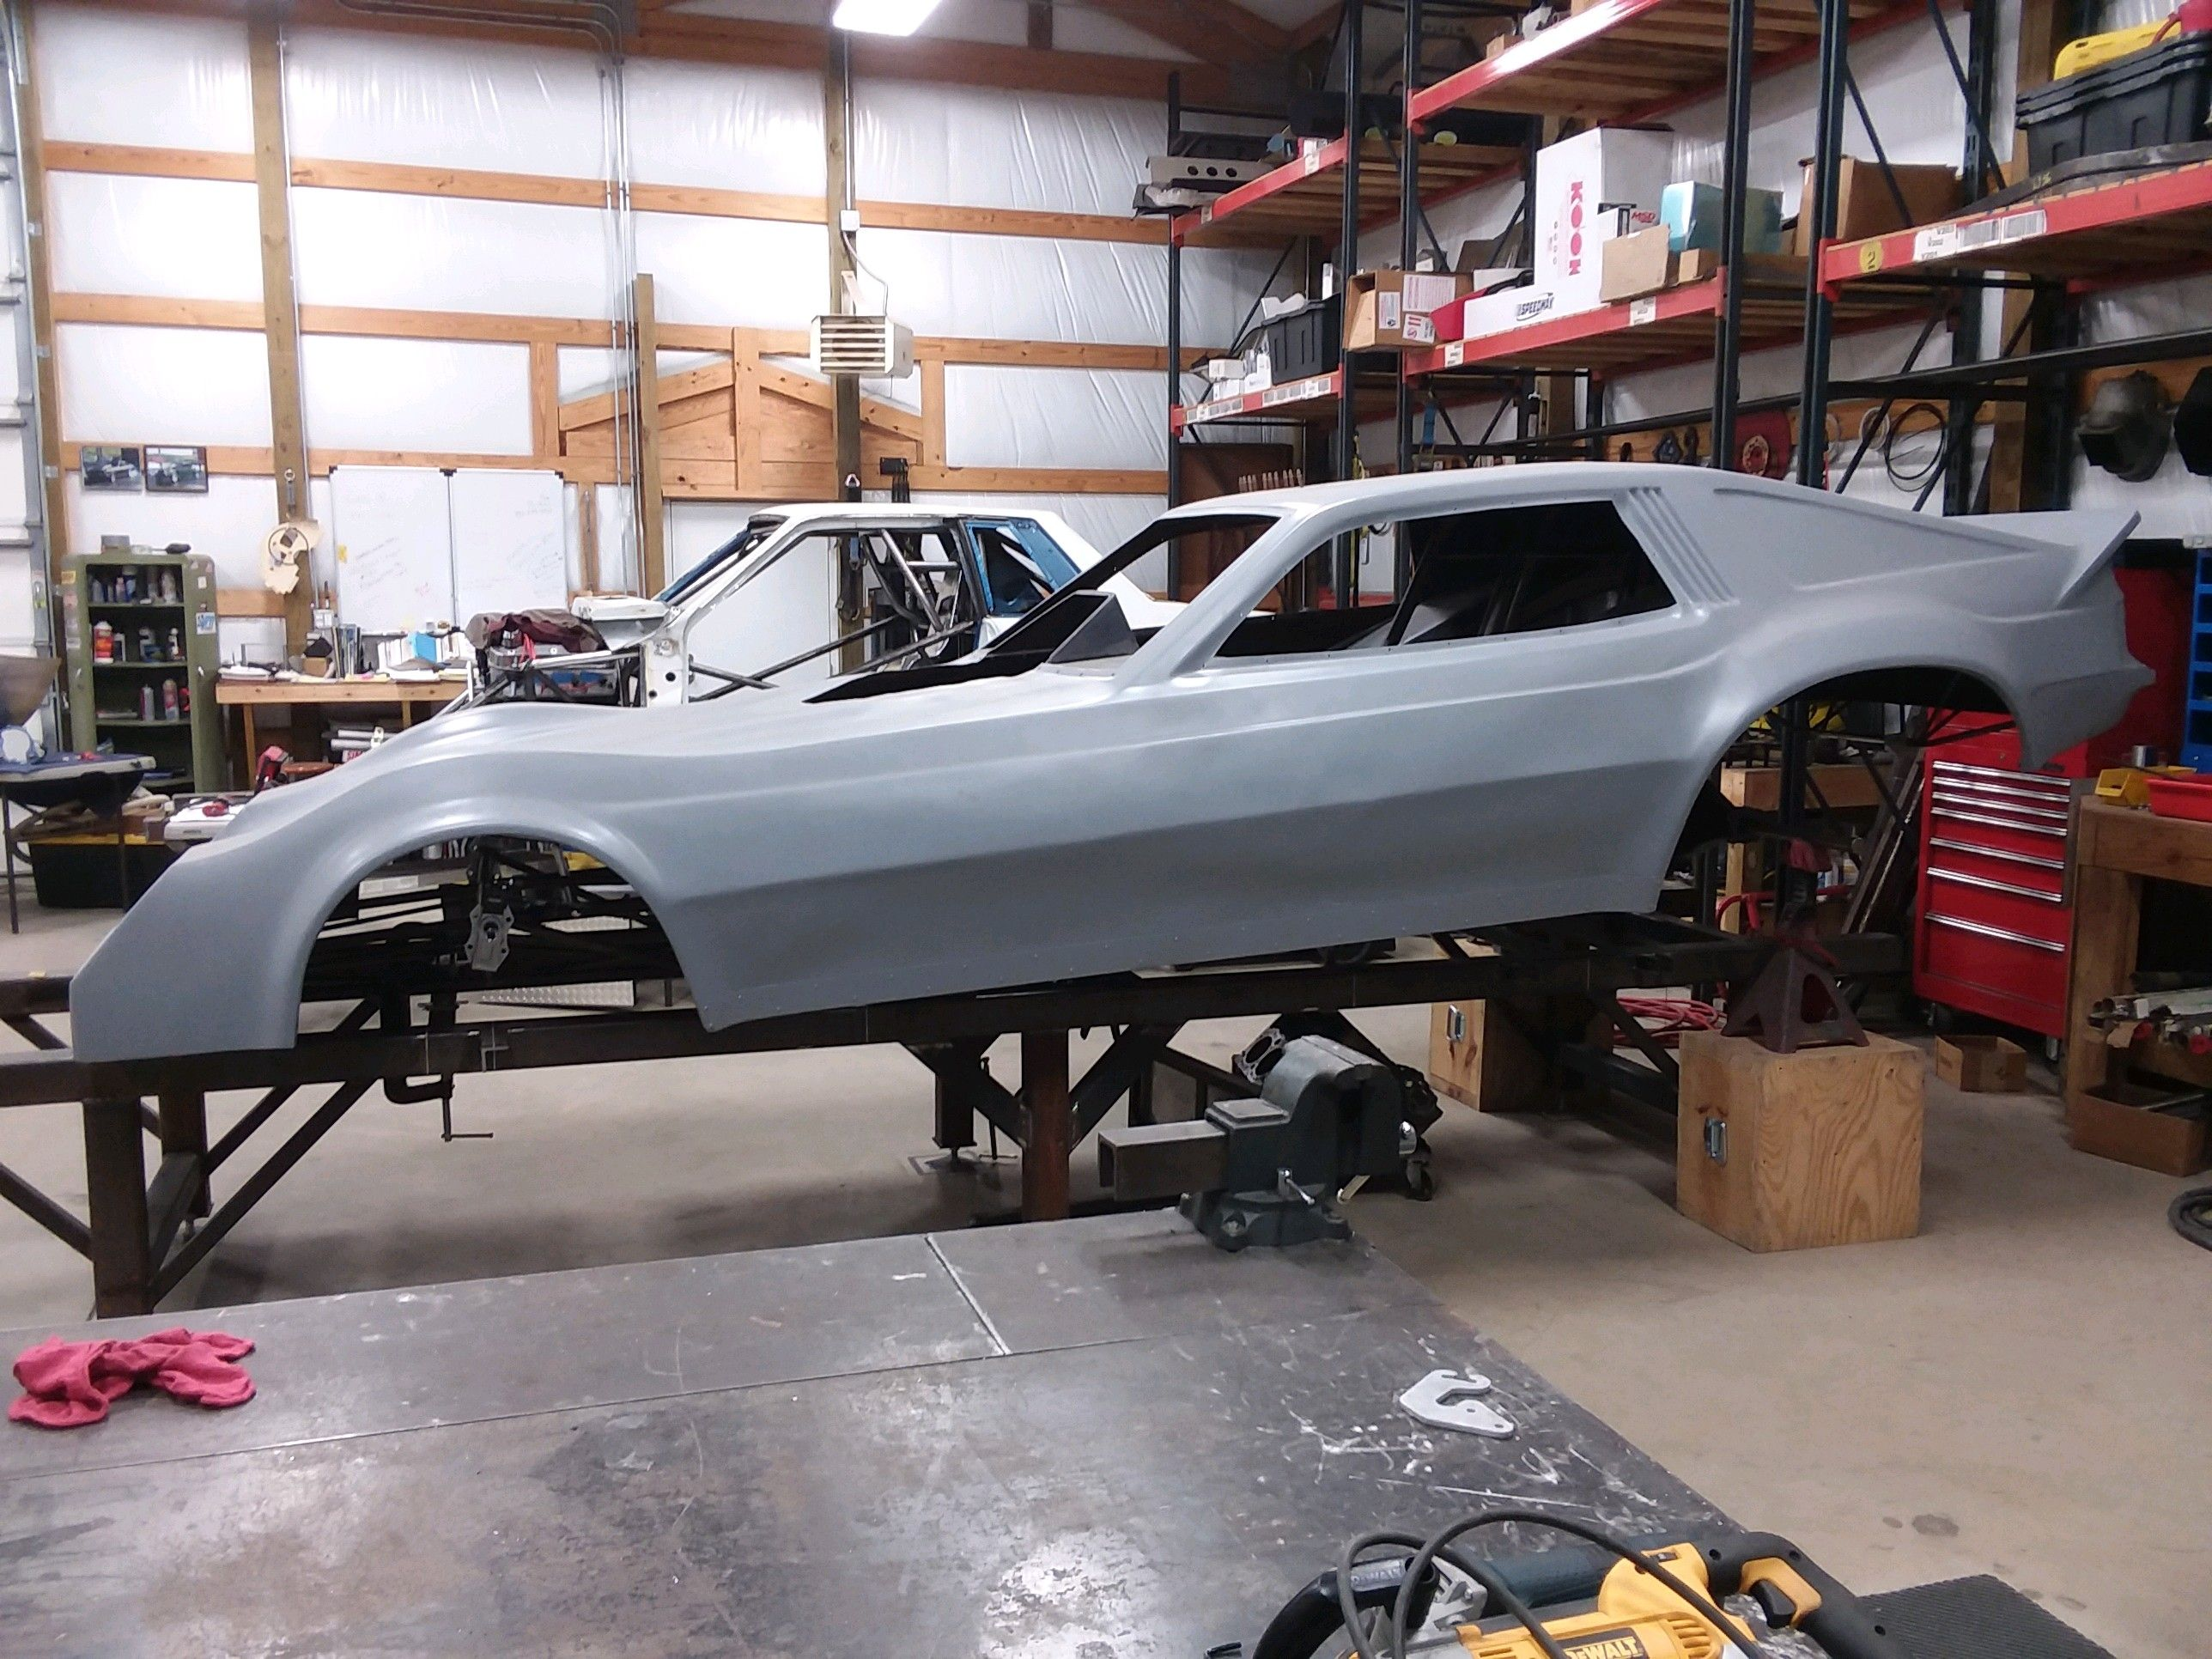 Pin By Icanfab Com On Della Woods Nostalgia Funny Car Chassis Fabrication Drag Racing Cars Cars For Sale